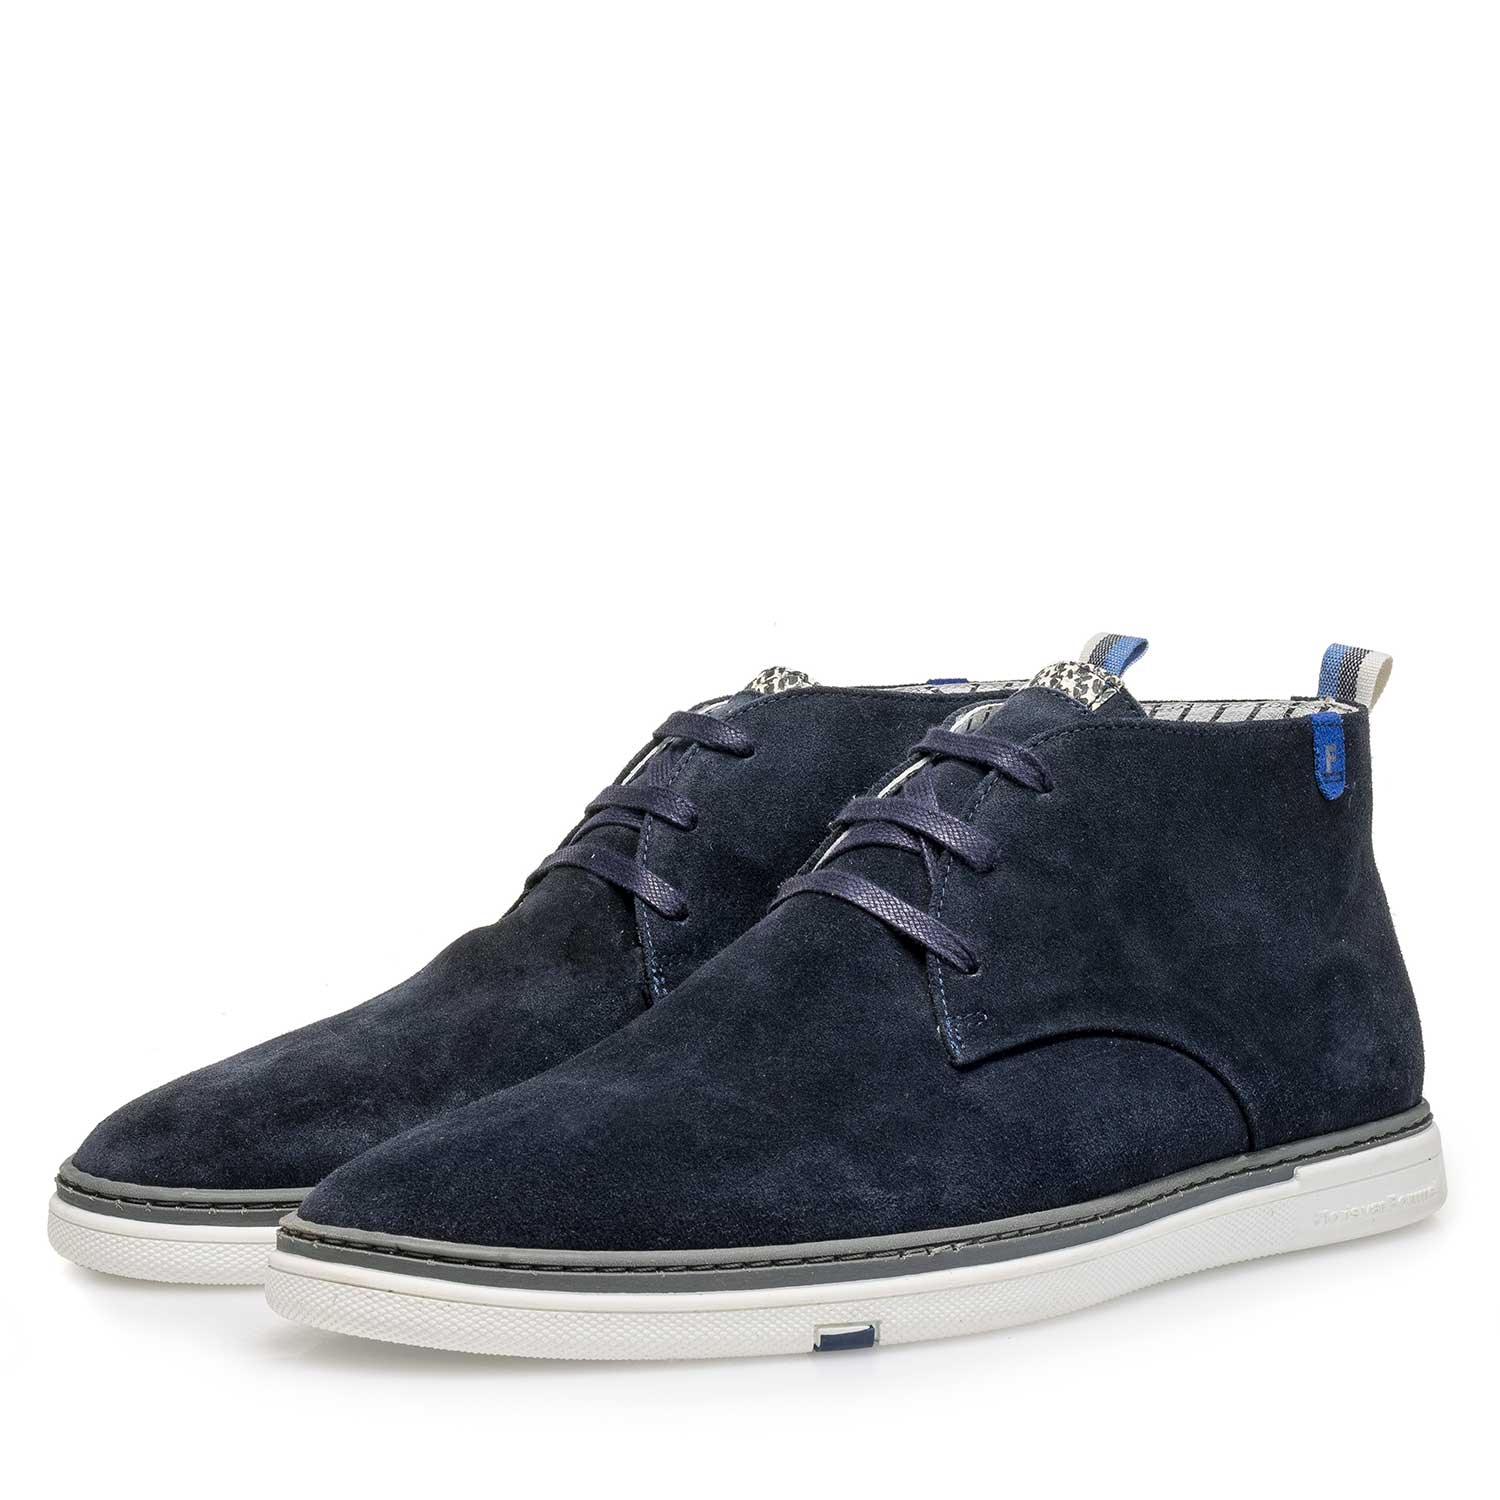 10502/01 - Blue slightly buffed suede leather lace boot